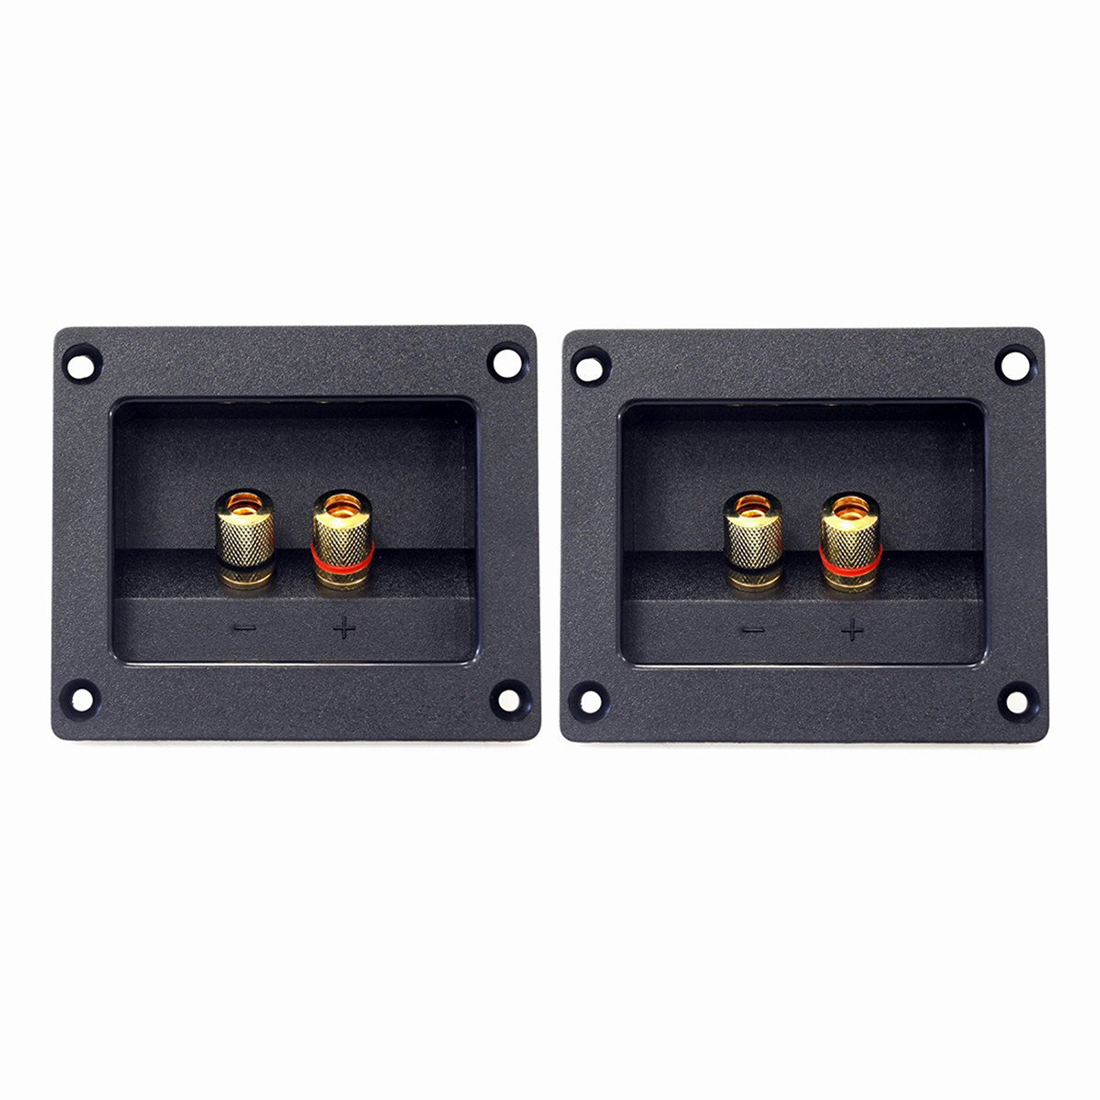 2pcs DIY Home Car Stereo 2-way Speaker Box Terminal Round Square Spring Cup Connector Binding Post Banana jack plugs Subwo